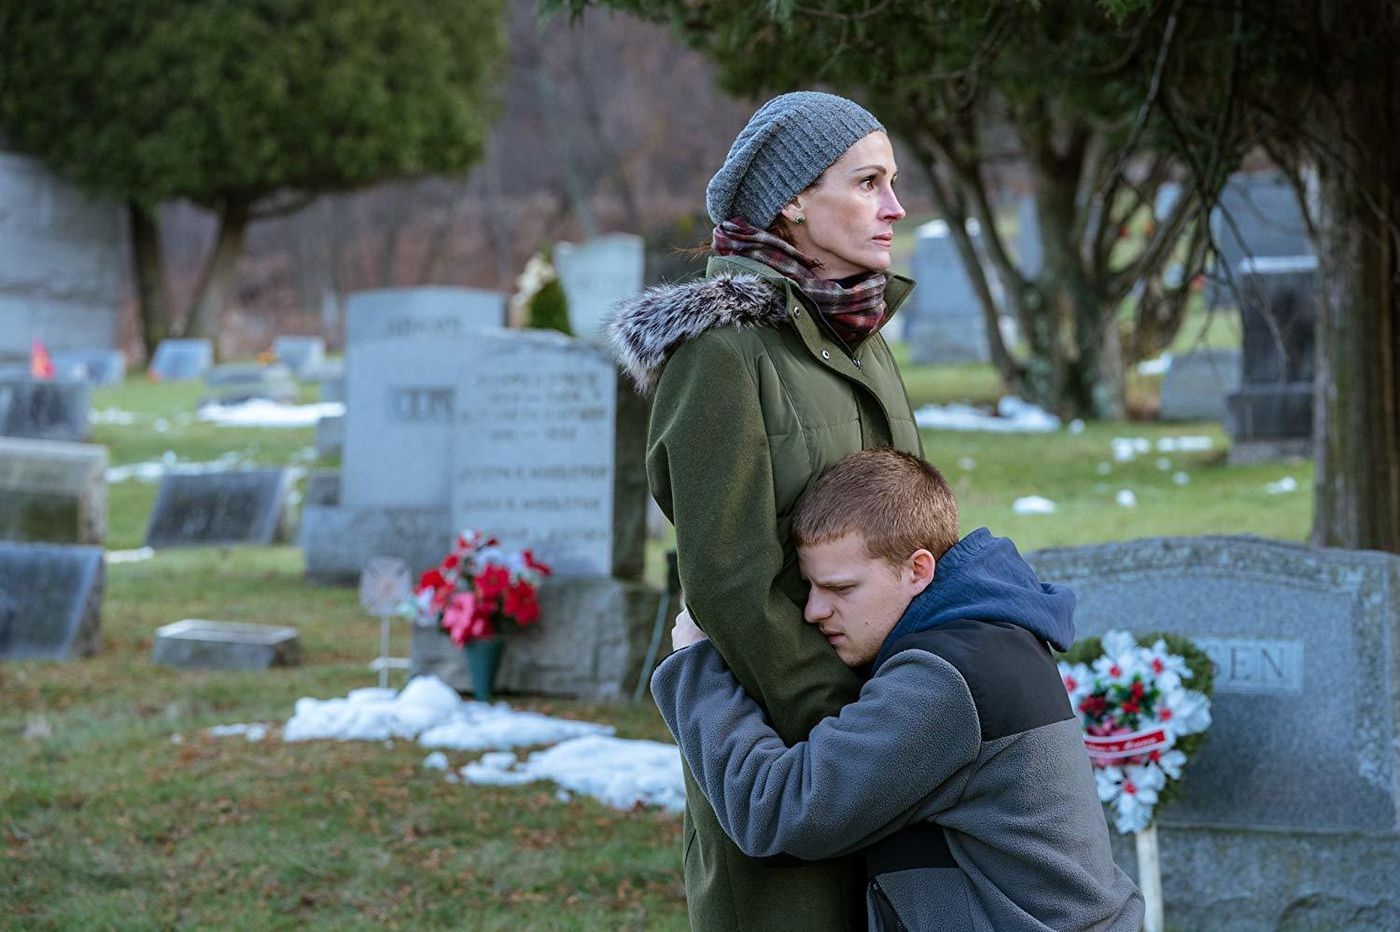 An addicted son makes a dangerous journey into his past in 'Ben is Back' | Movie Review